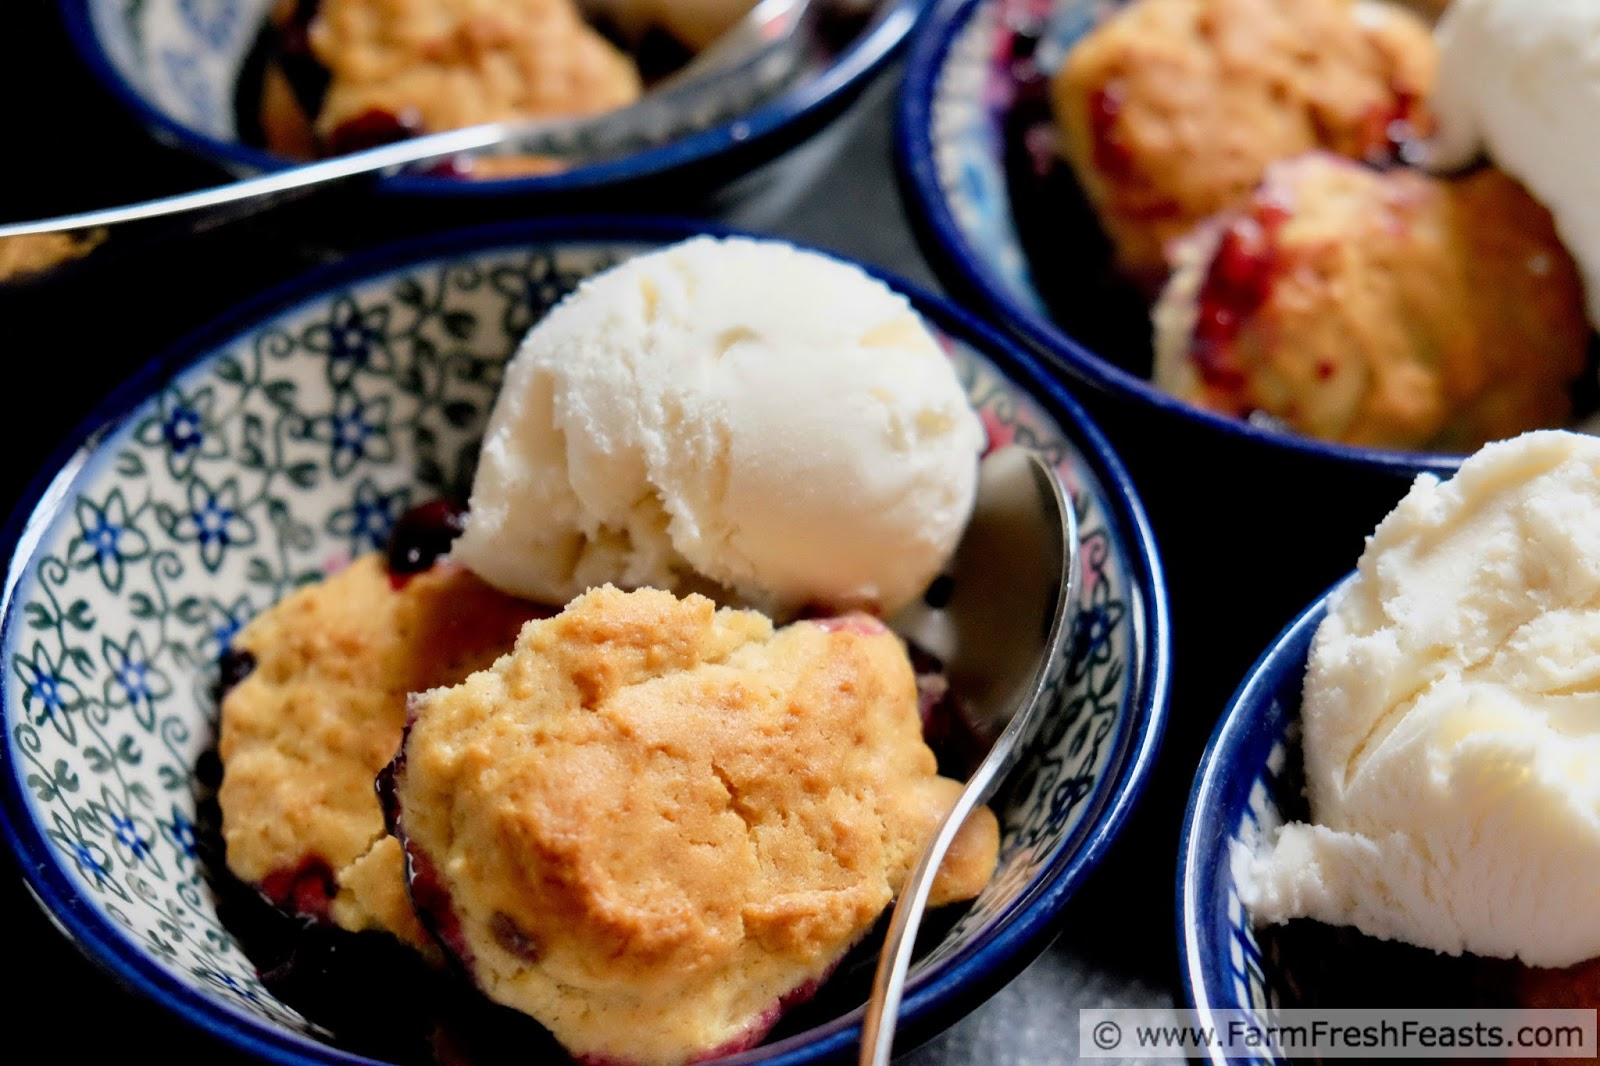 Fresh cherry and blueberry cobbler with vanilla ice cream